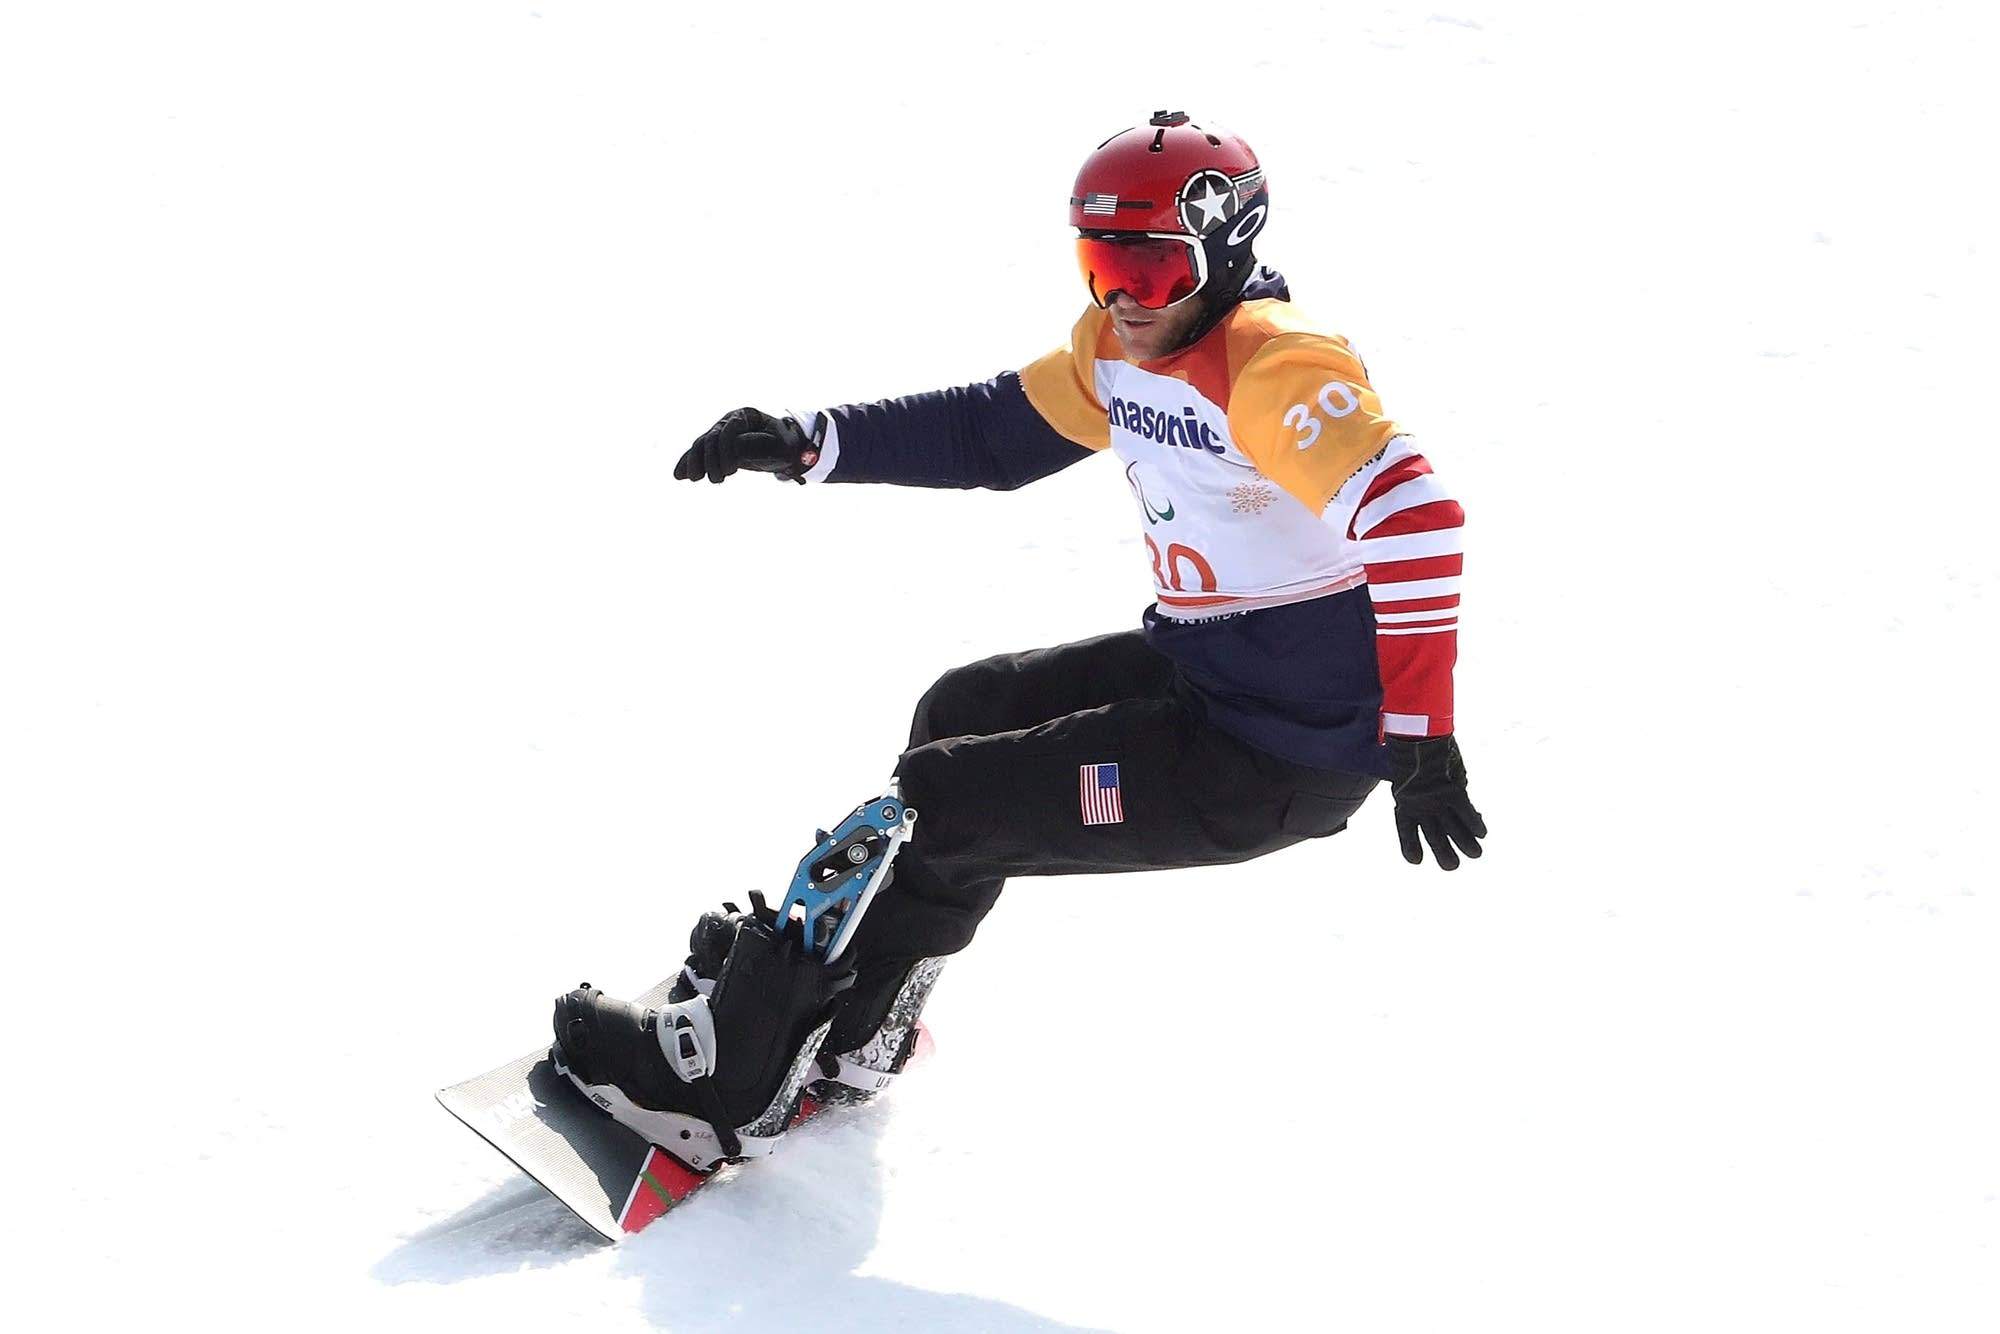 Mike Schultz of St. Cloud, Minn., competes in the Men's Snowboard Cross.